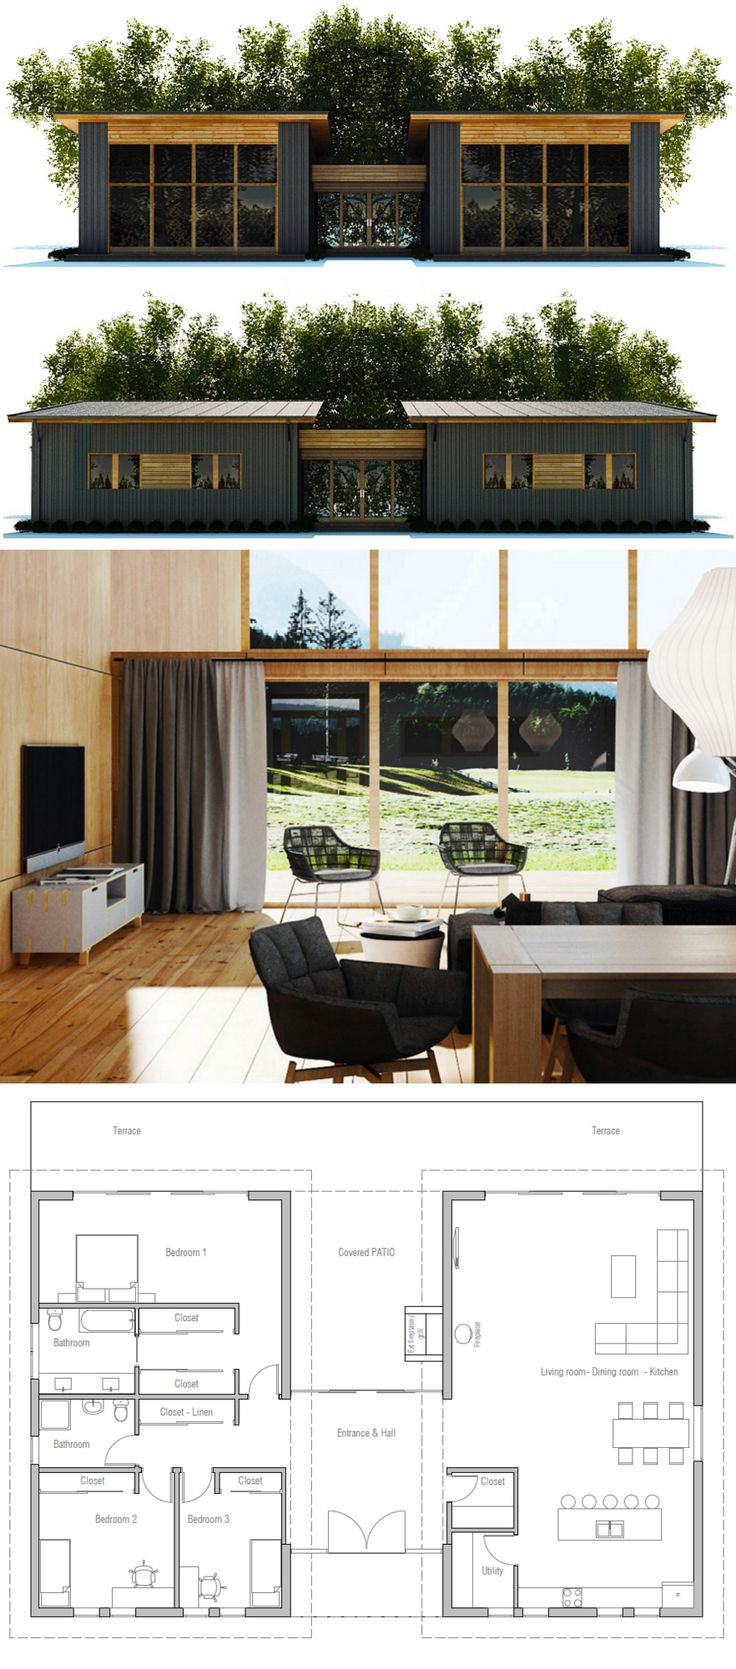 Stupendous 17 Best Ideas About Small Houses On Pinterest Small Homes Tiny Largest Home Design Picture Inspirations Pitcheantrous